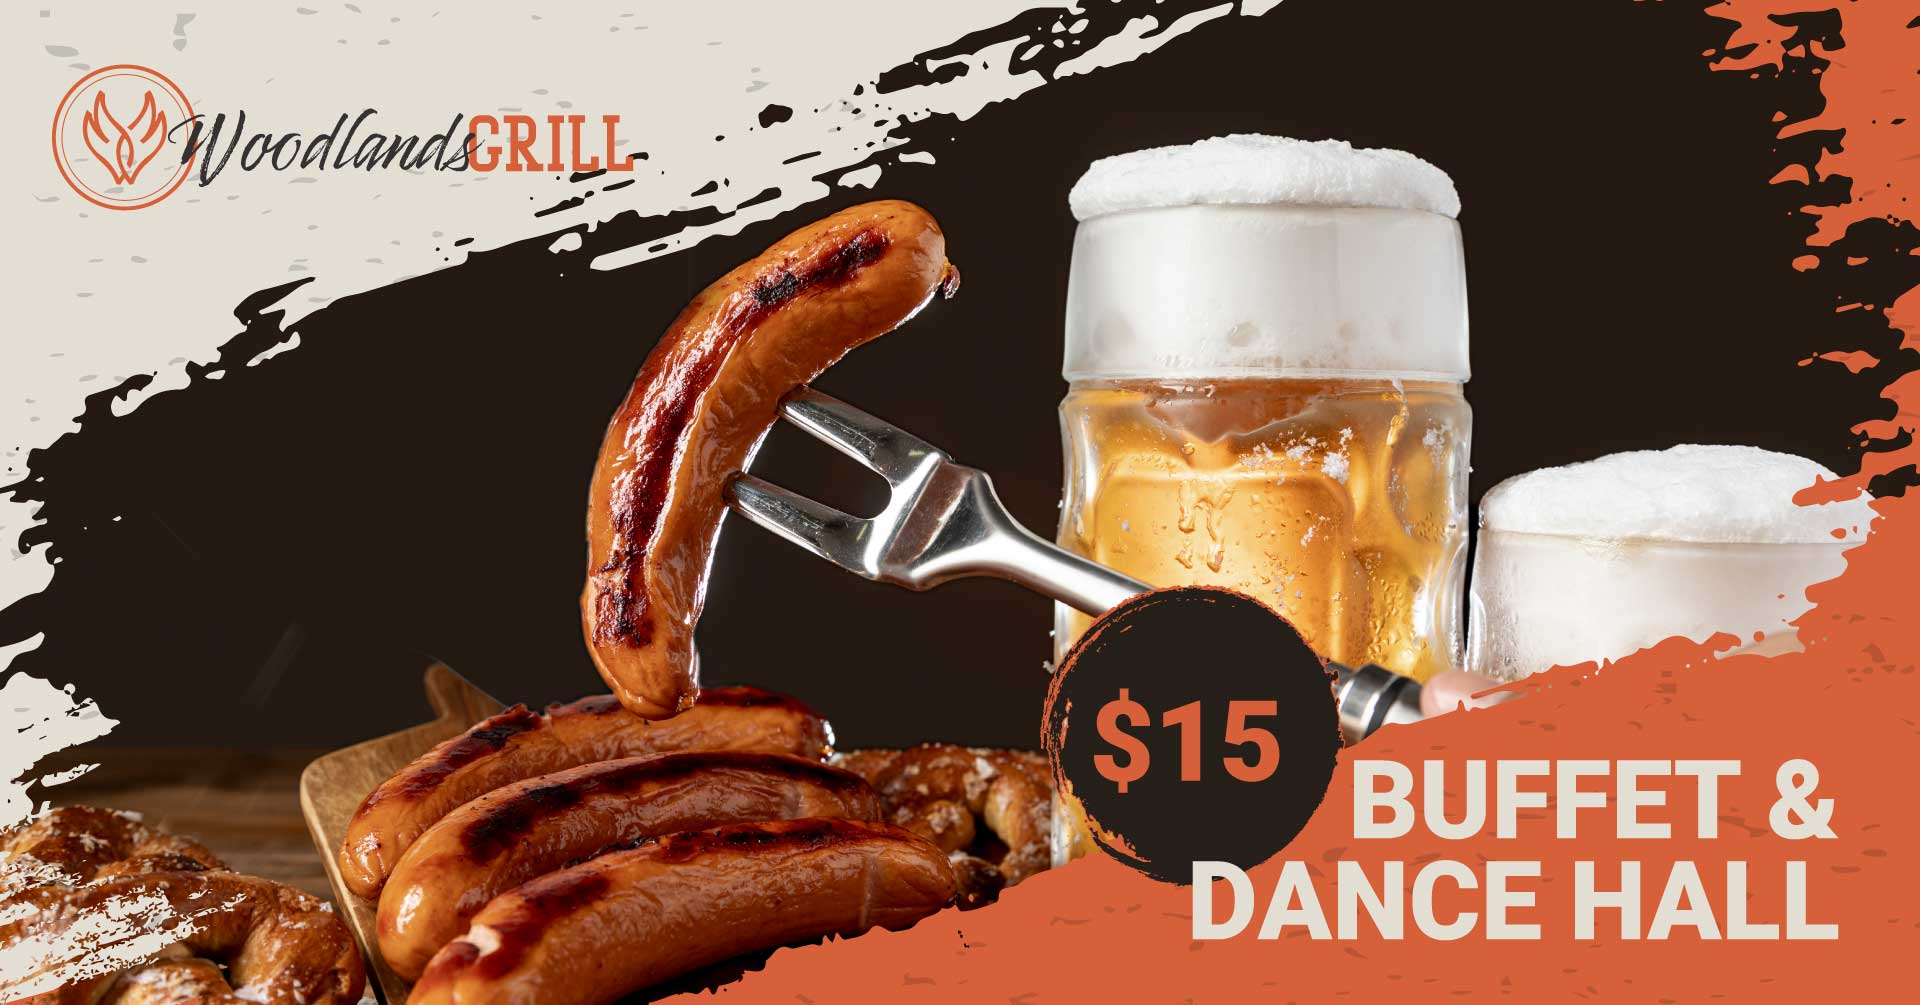 Cold Beer and Grilled Bratwurst